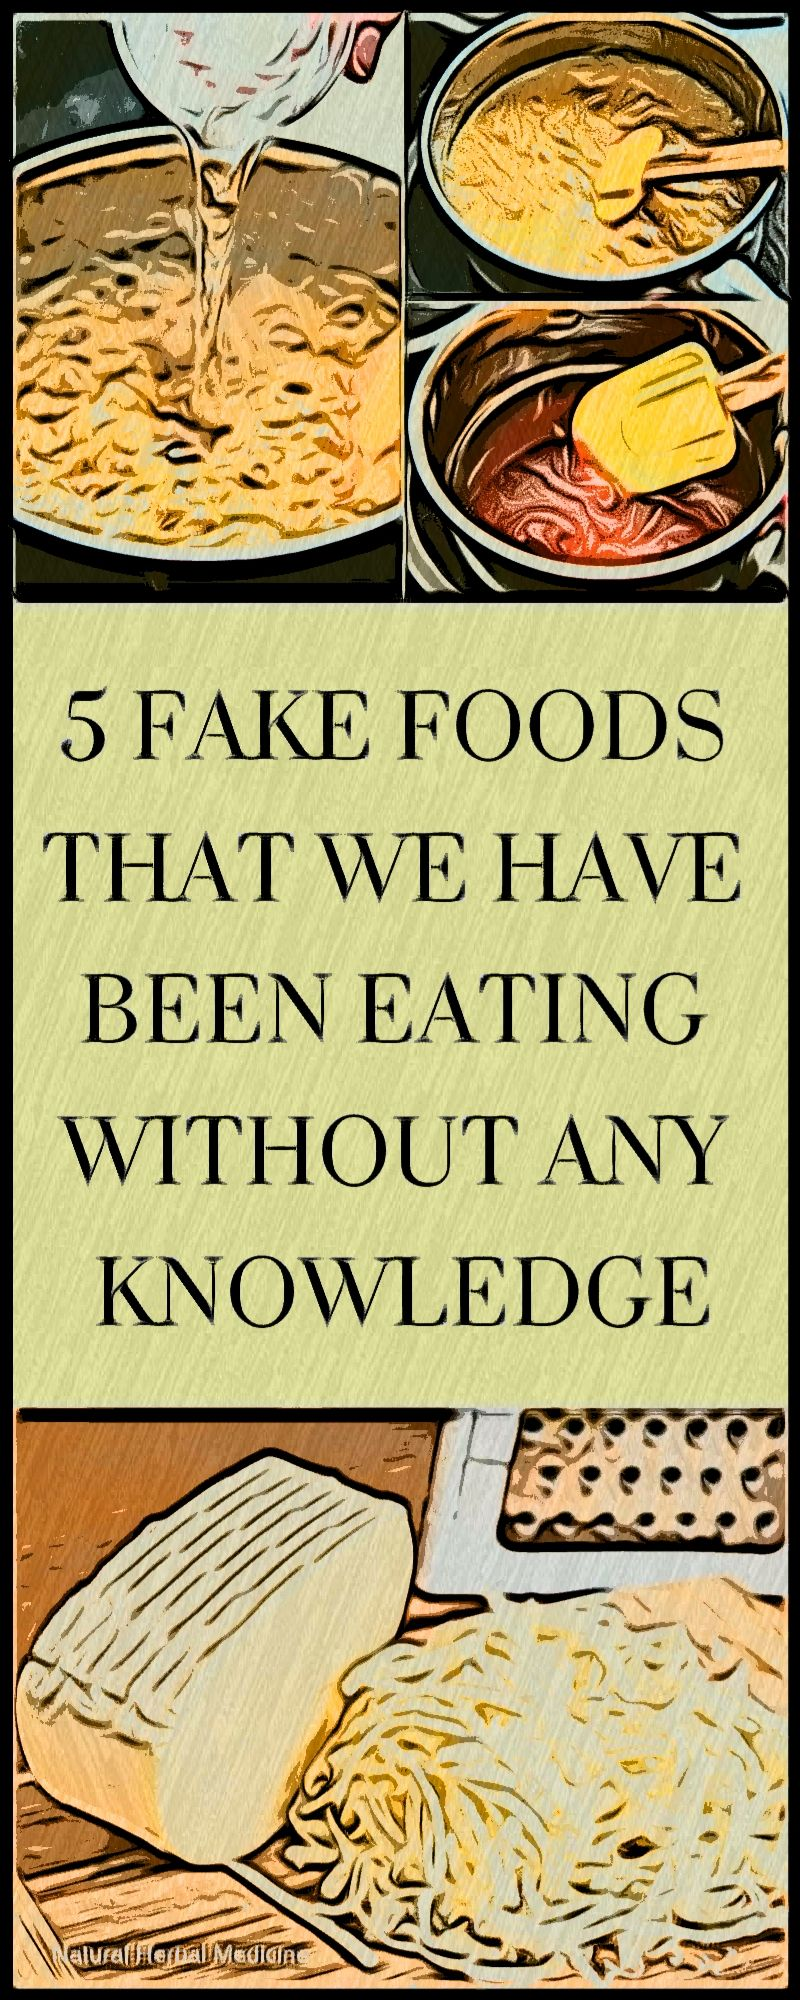 5 fake foods that we have been eating without any